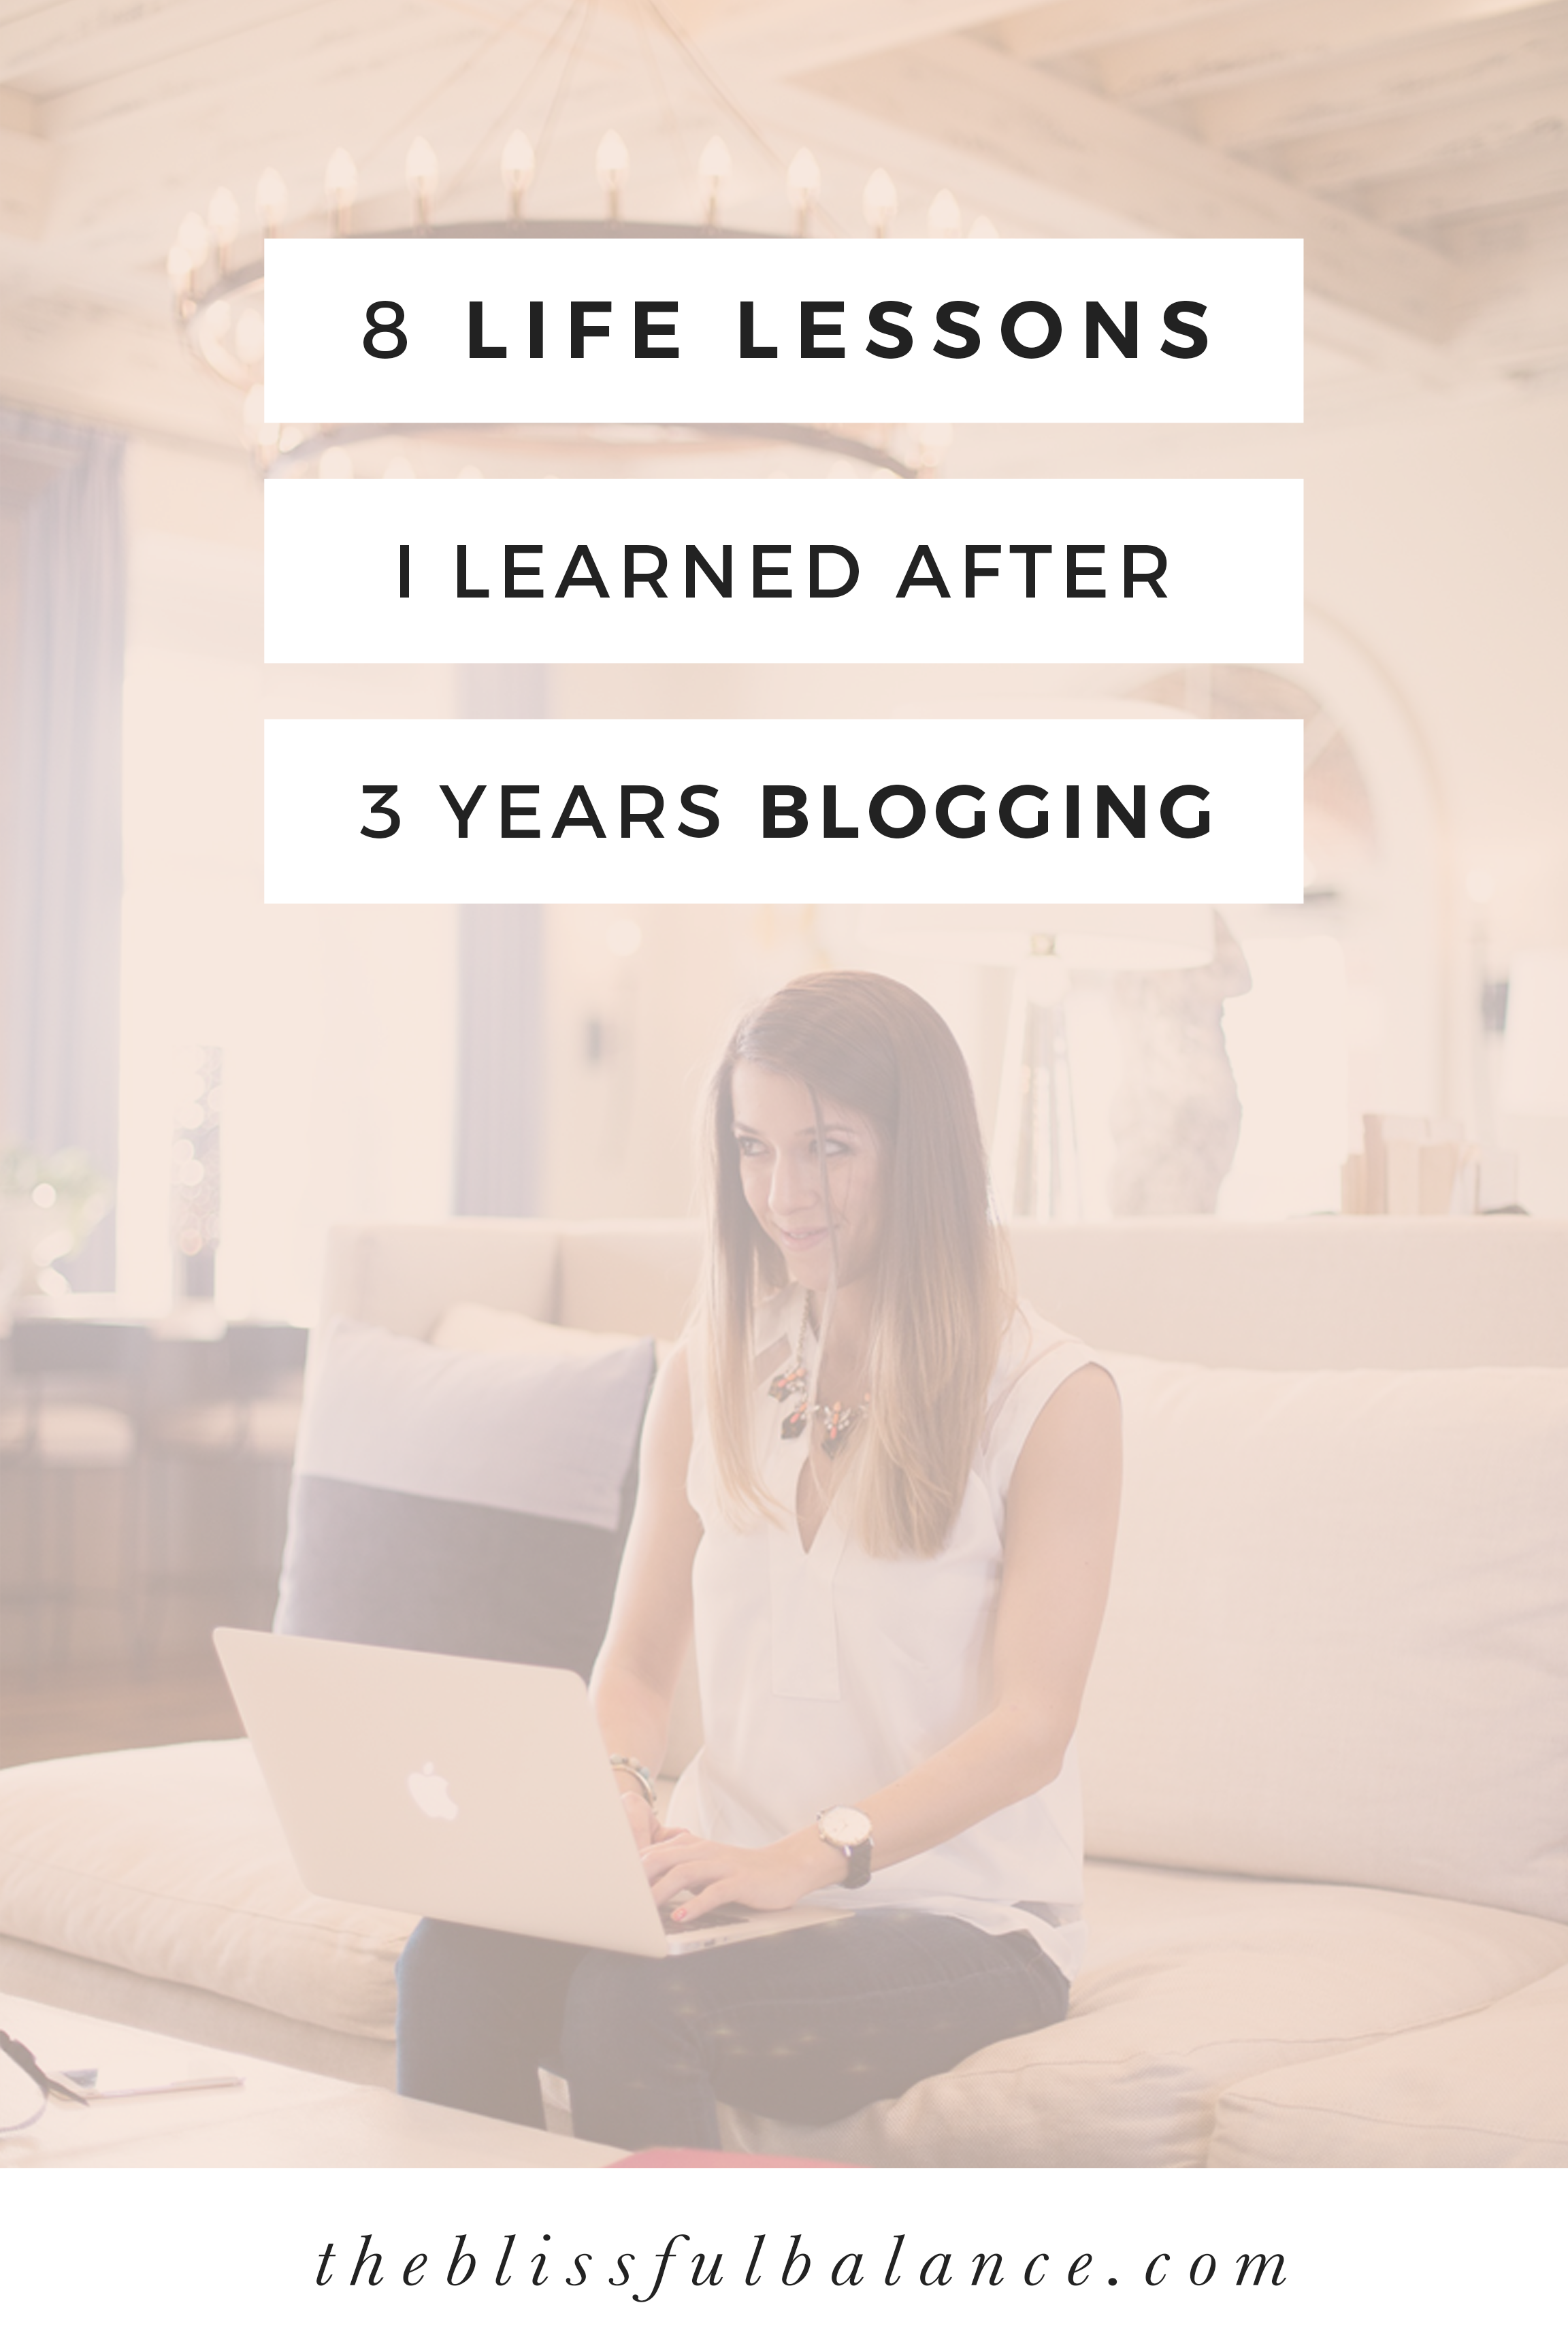 After blogging for three years, these eight life lessons have changed my perspective and have helped me grow professionally and personally.